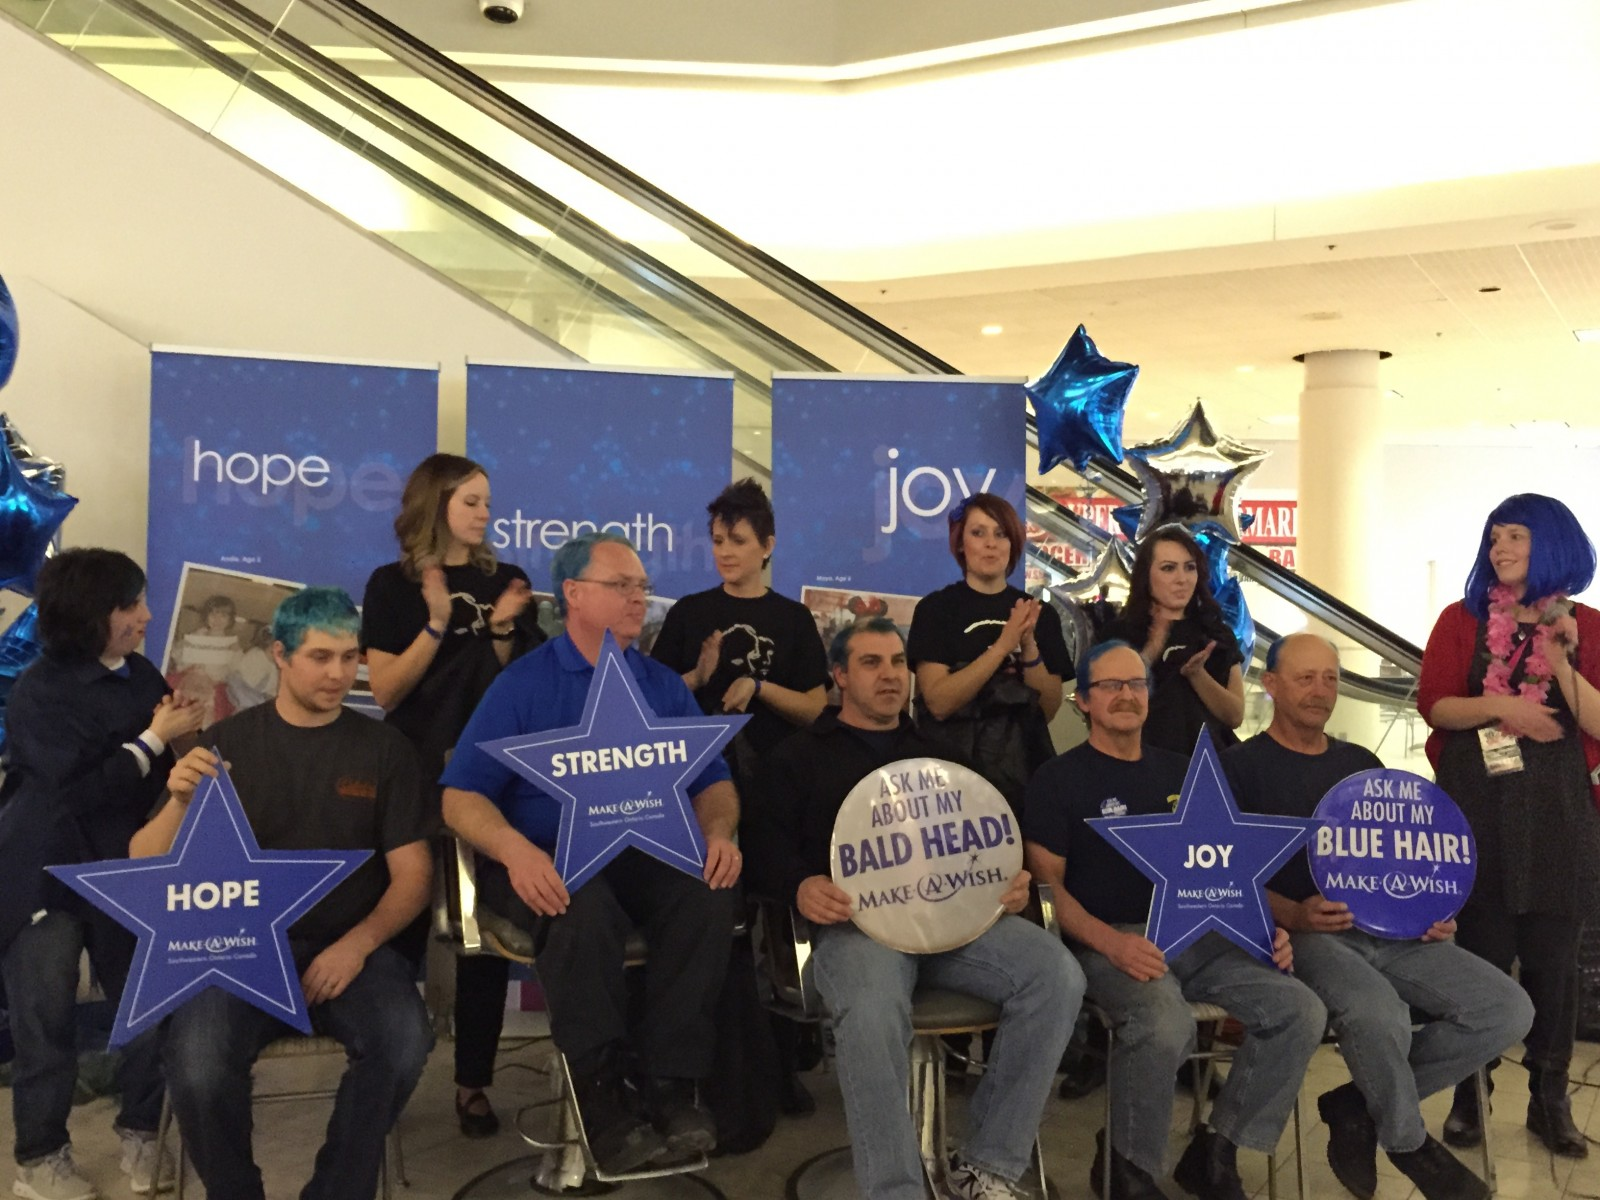 Londoners 'Go Blue, Go Bald' for Make-A-Wish